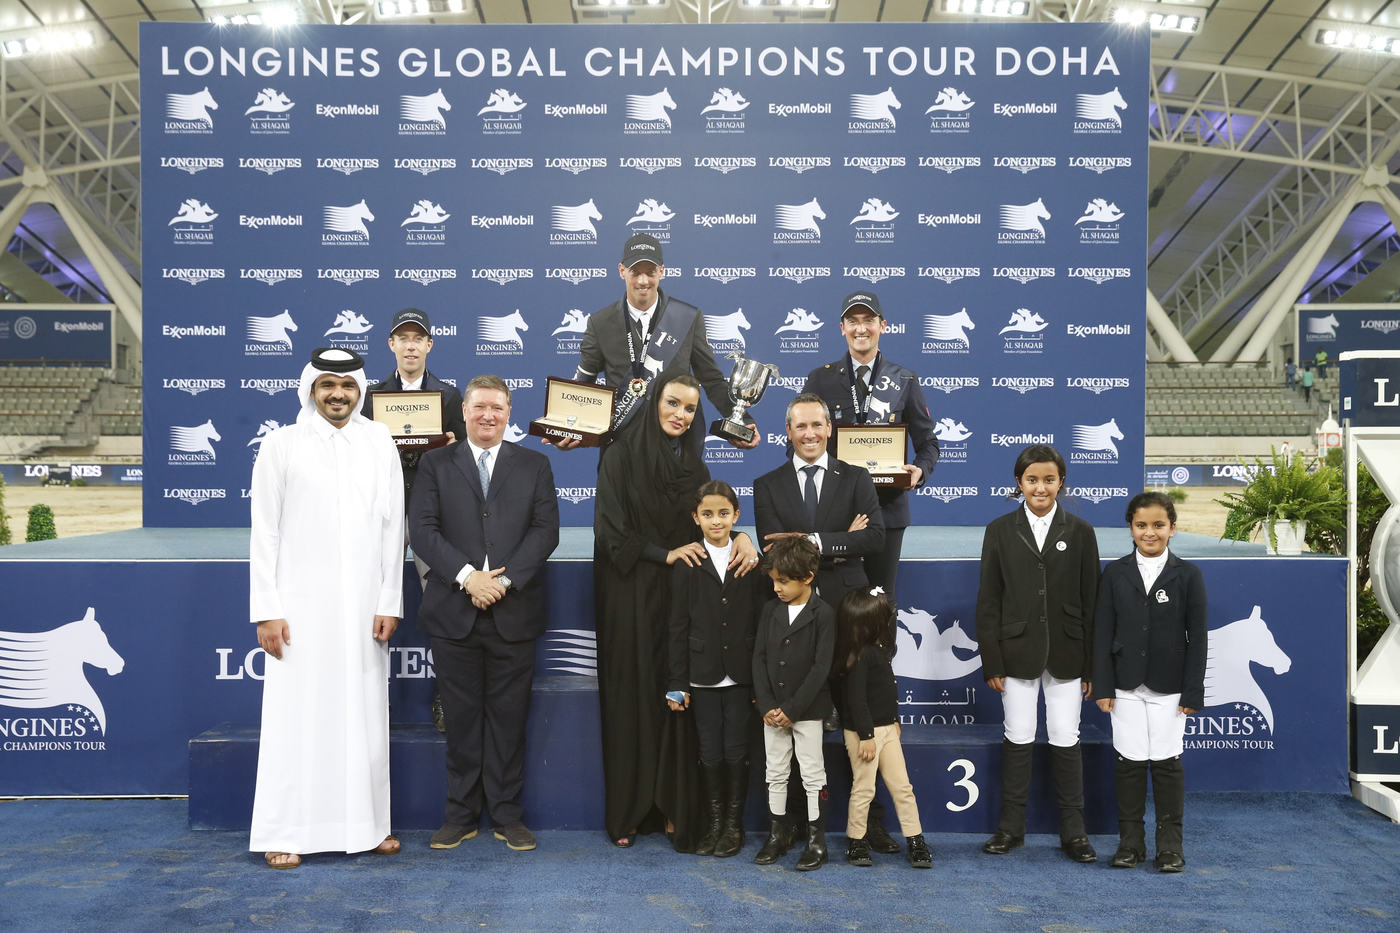 Longines Show Jumping Event: Qatari victory at the 2017 Longines Global Champions Tour in Doha 3